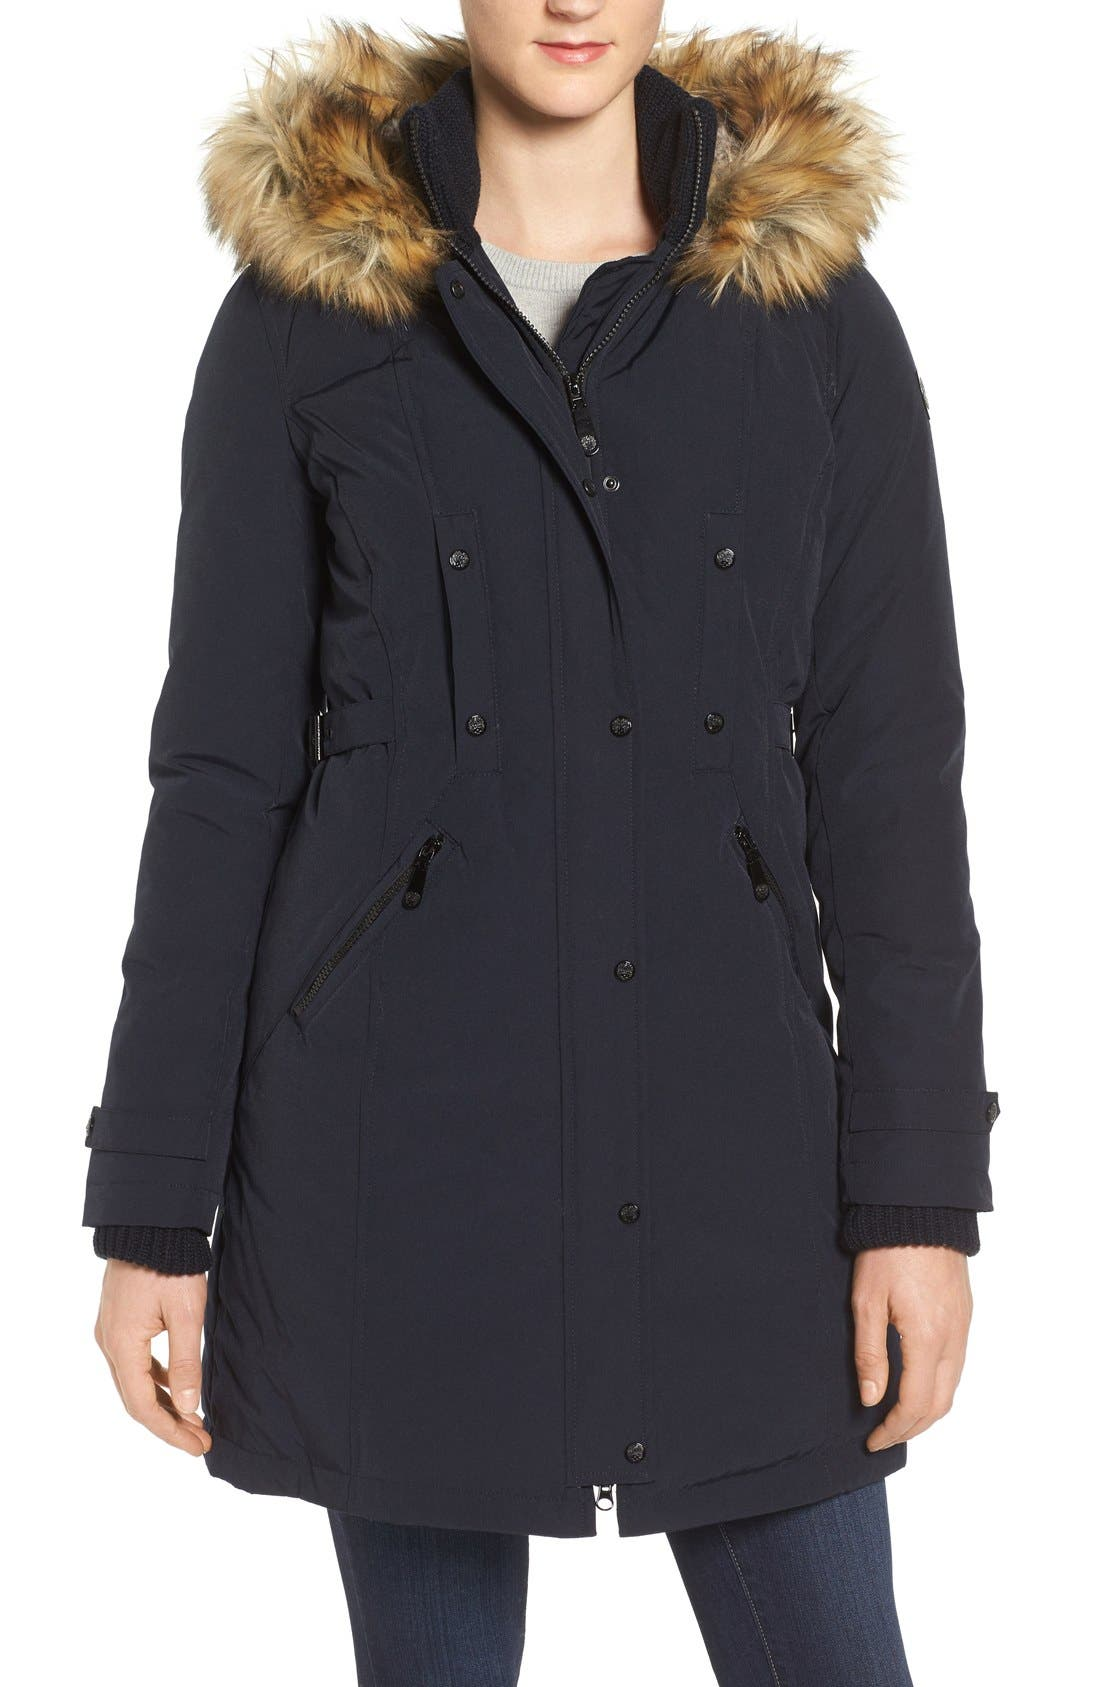 Vince Camuto Faux Fur Trim Down & Feather Fill Parka